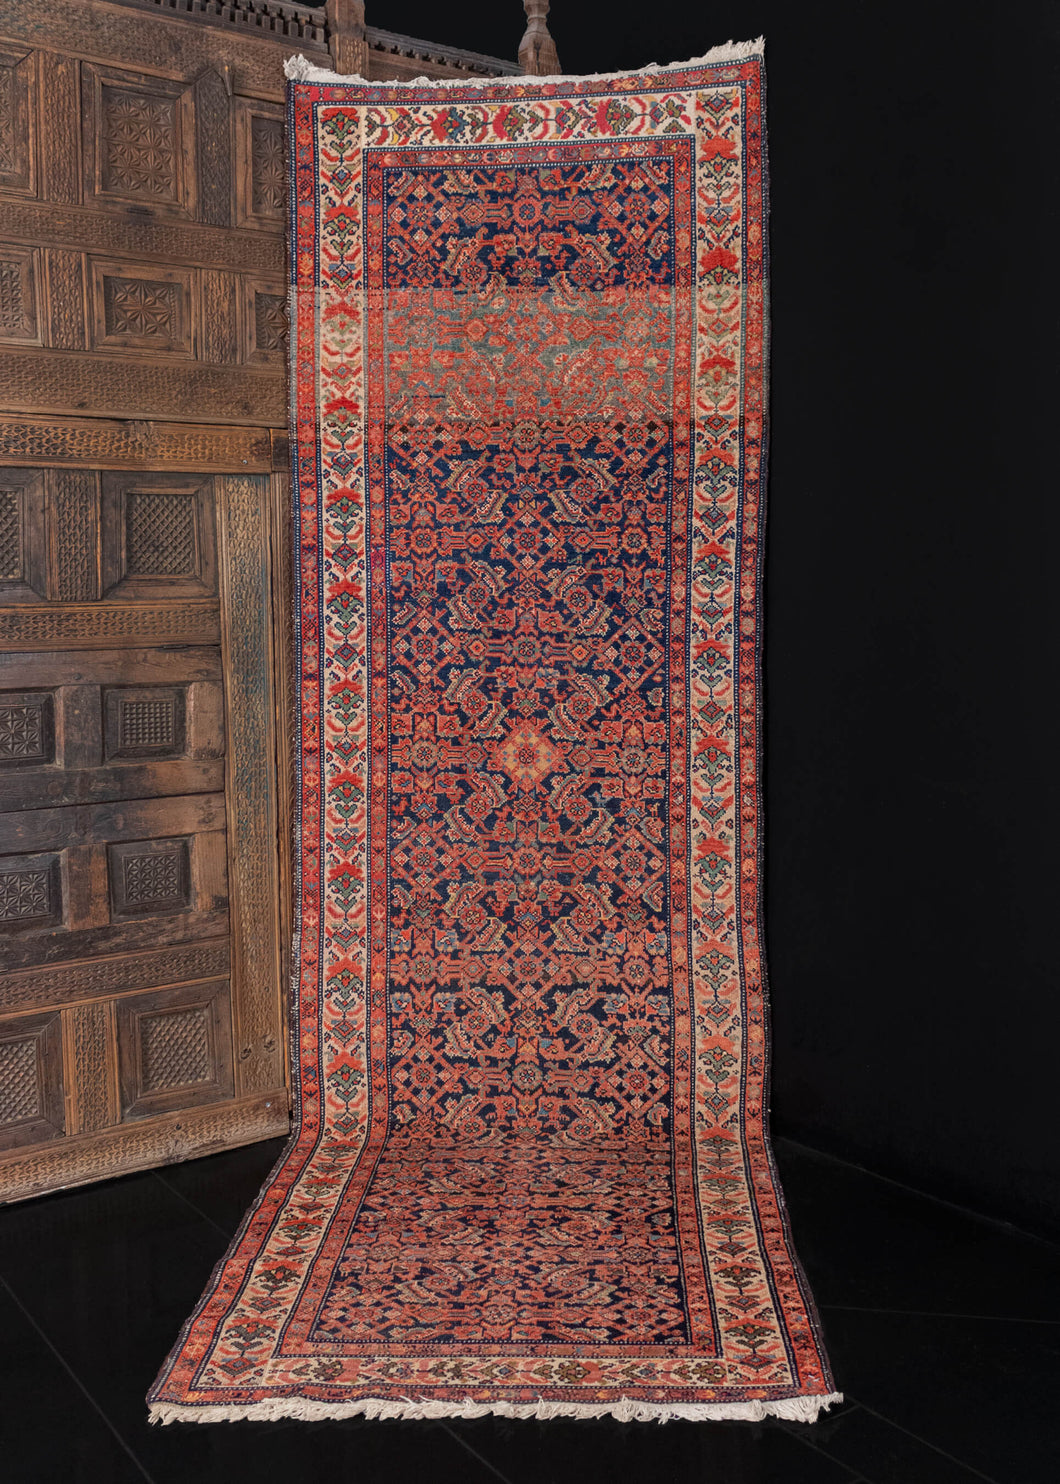 Mid century Malayer runner handwoven in NW Iran.   This classic rug features an allover Herati design on a deep indigo blue field. Other colors in the design are bright madder reds, light and dark browns, and soft beiges and ivories. The border is composed of a funky and unusual flower design.    In perfect condition, signs of wear consistent with age. Tightly woven low pile, with a heft handle.